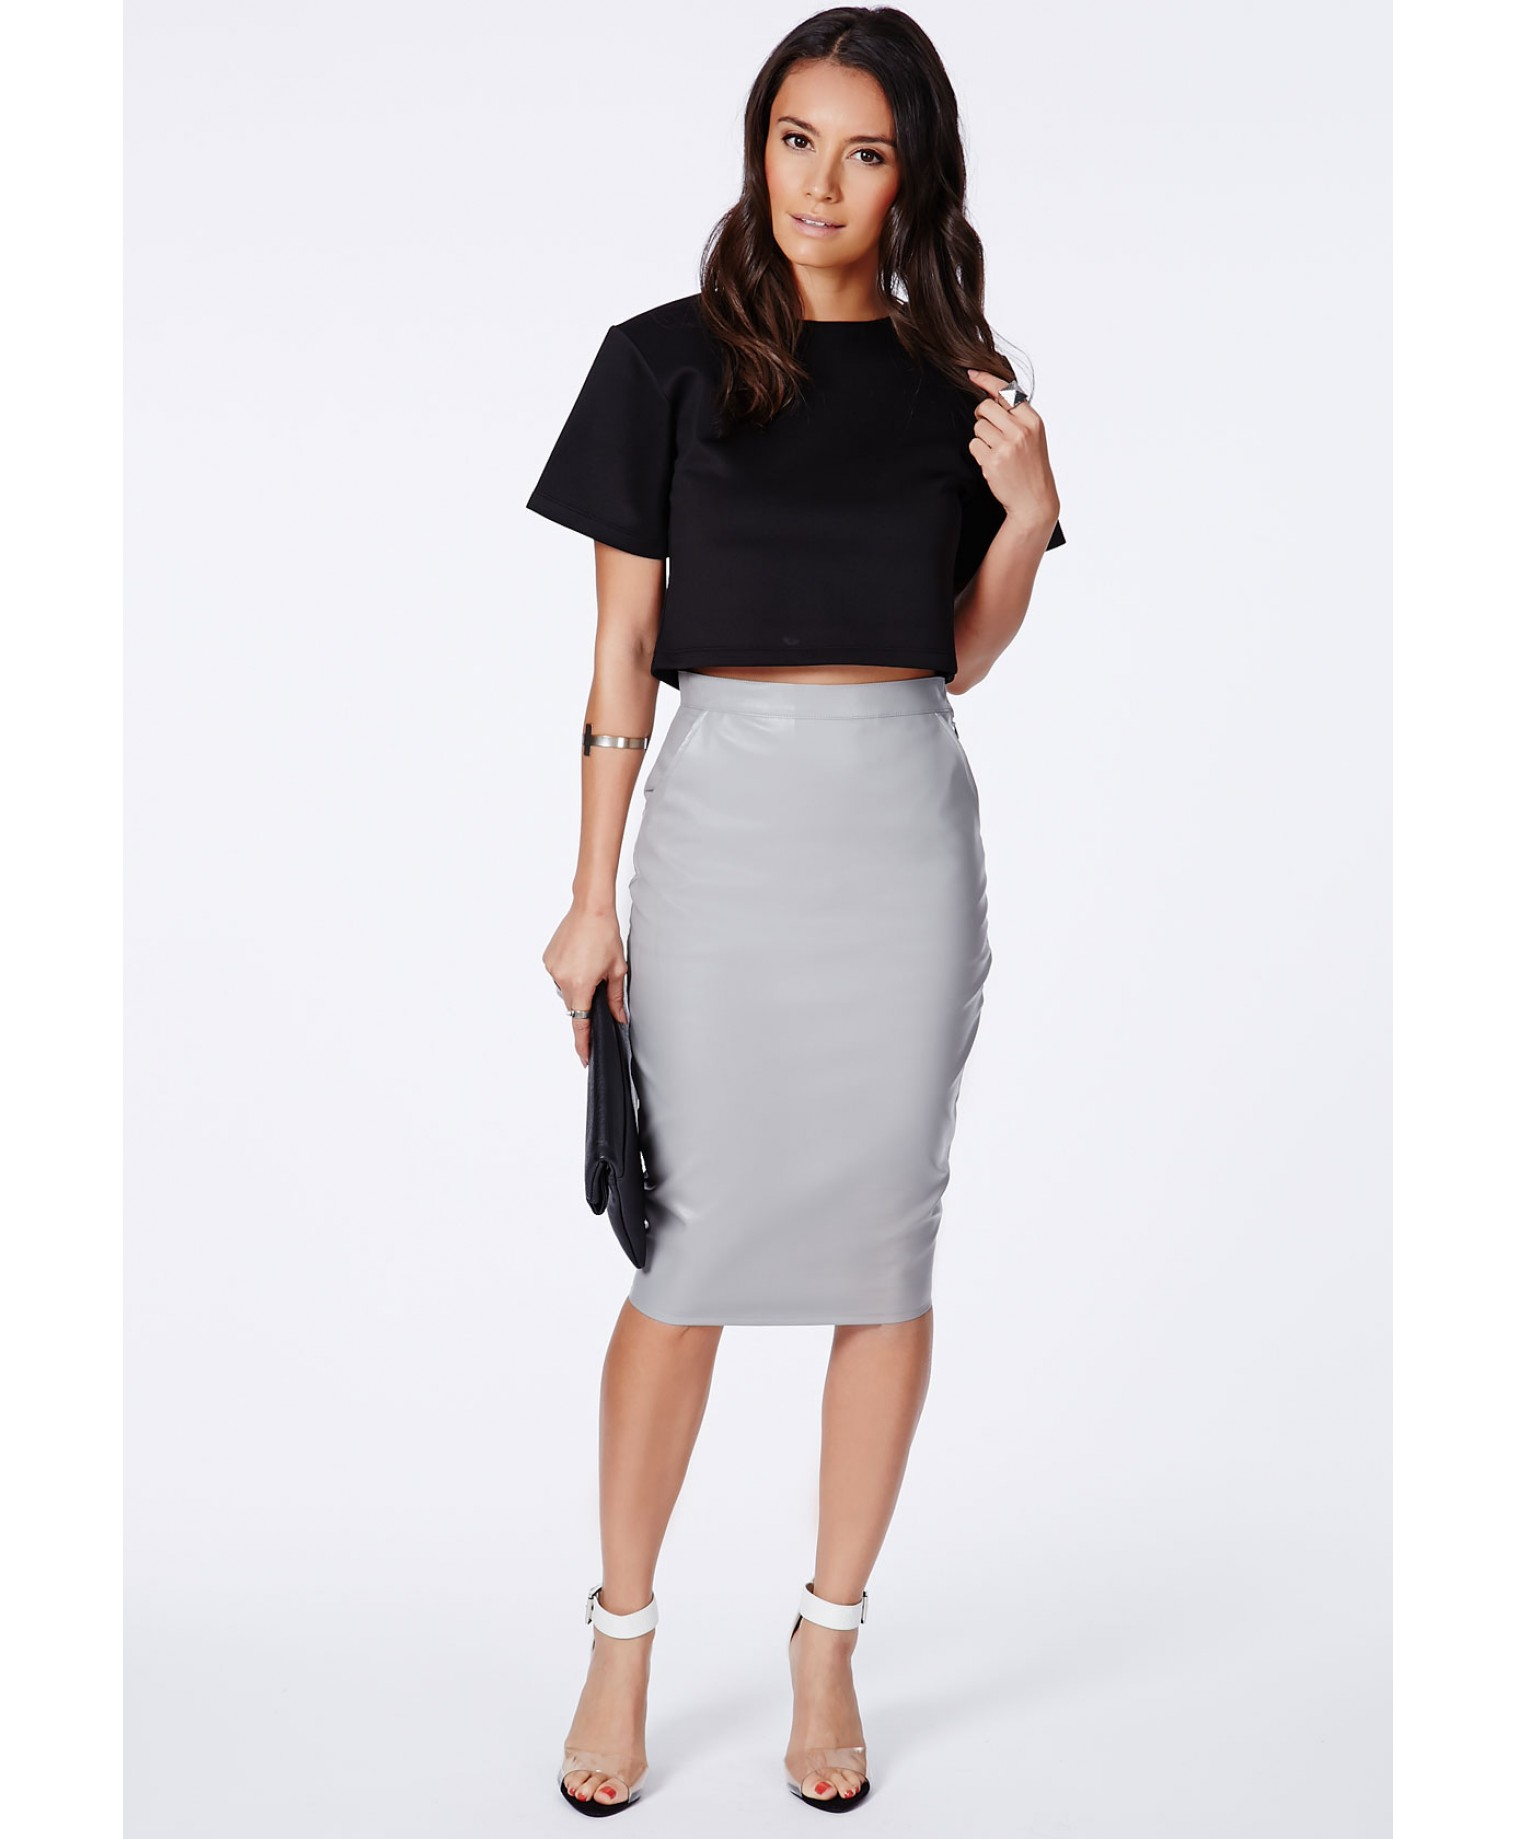 Lyst - Missguided Mariota White Faux Leather Pencil Skirt